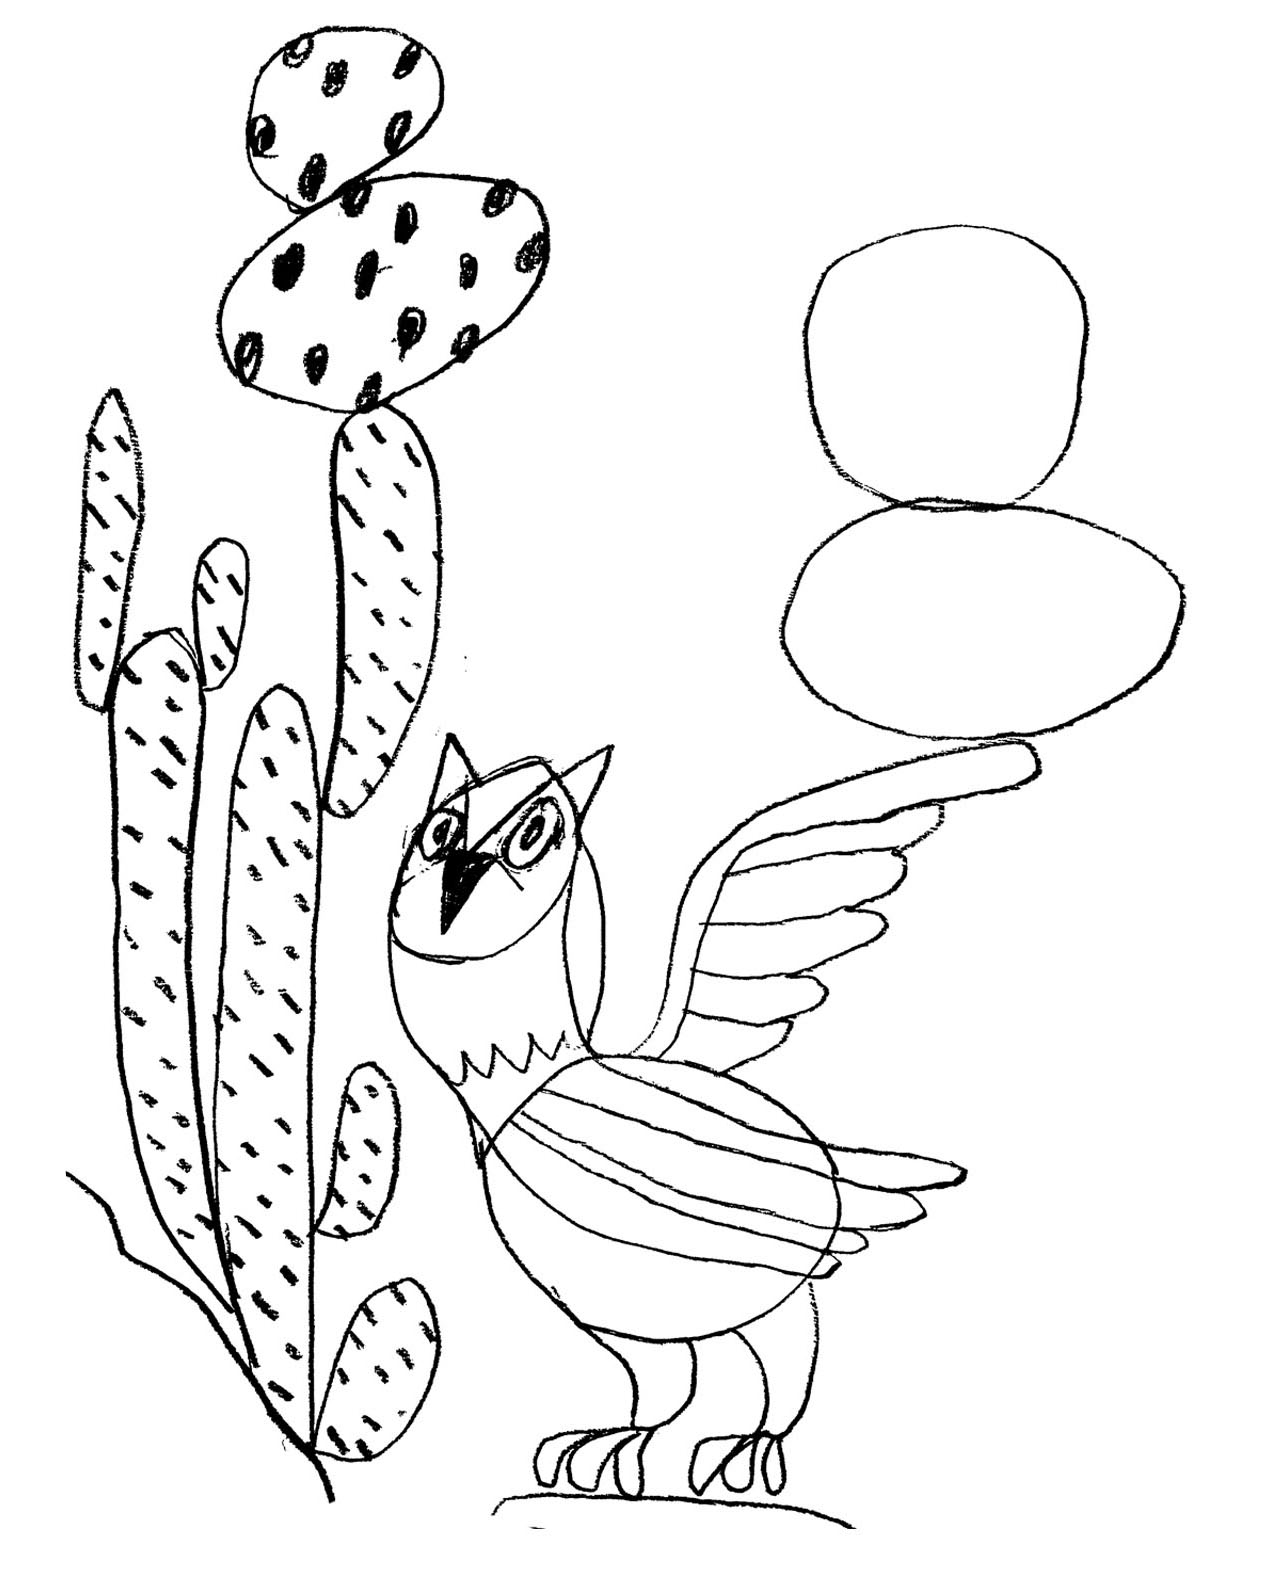 drawing owls.jpg